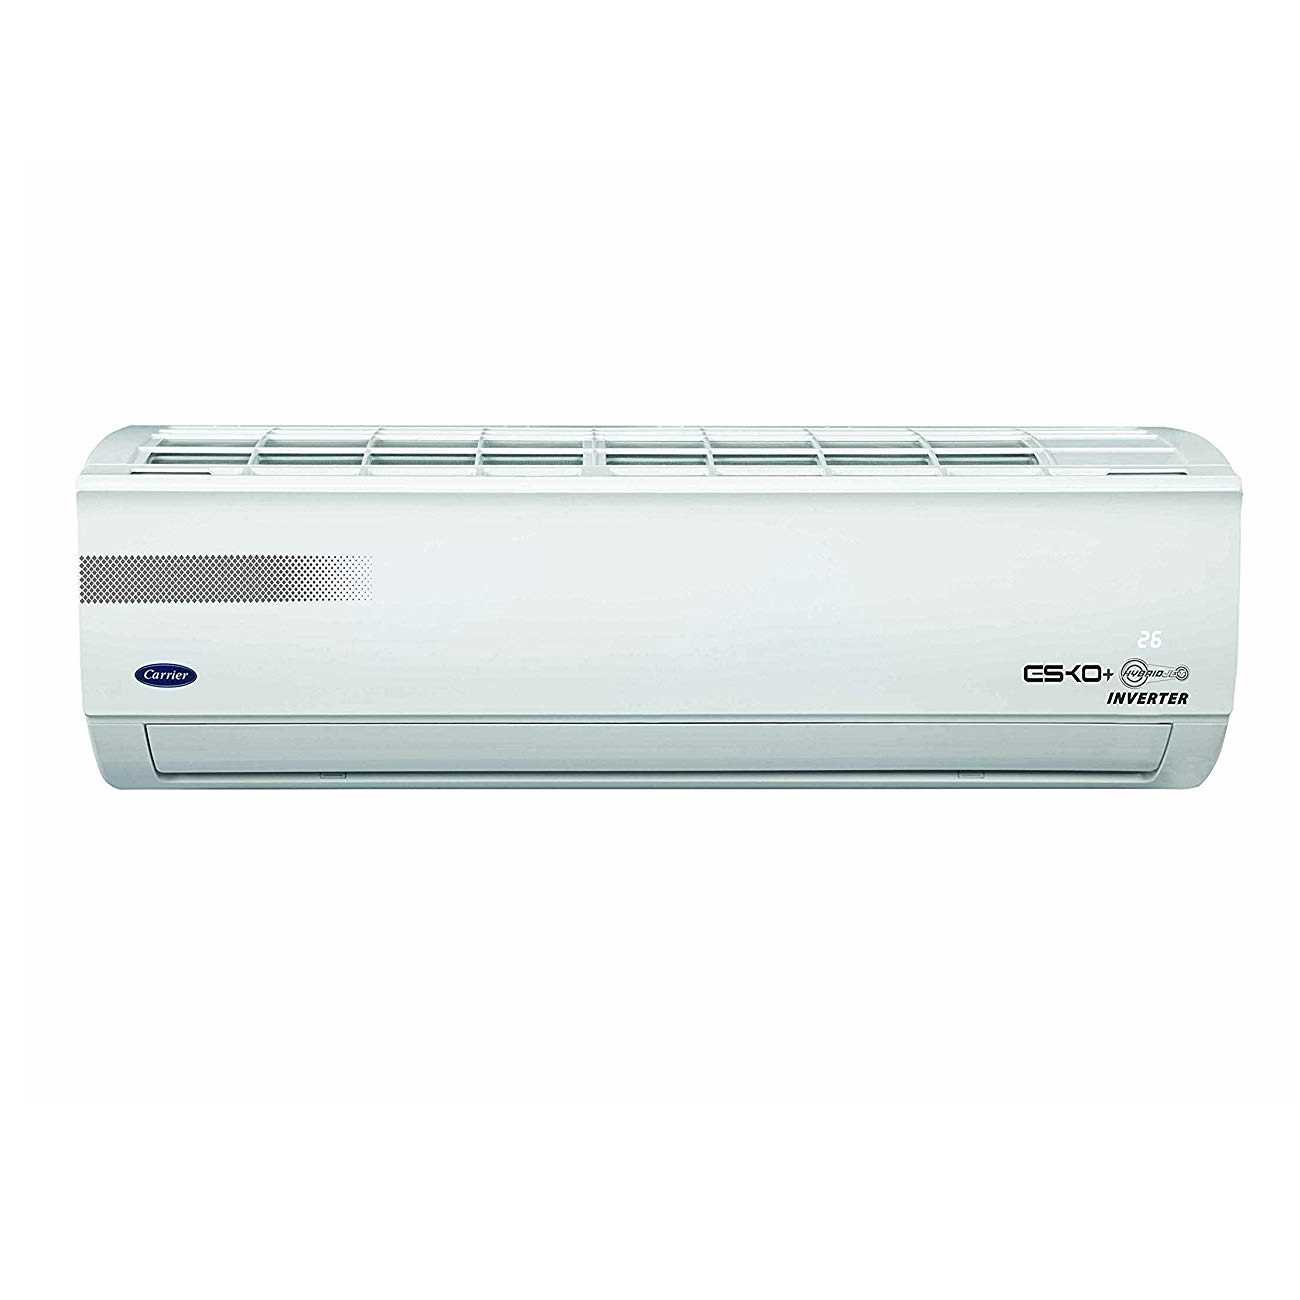 Carrier 12K Esko Plus 1 Ton 3 Star Inverter Split AC